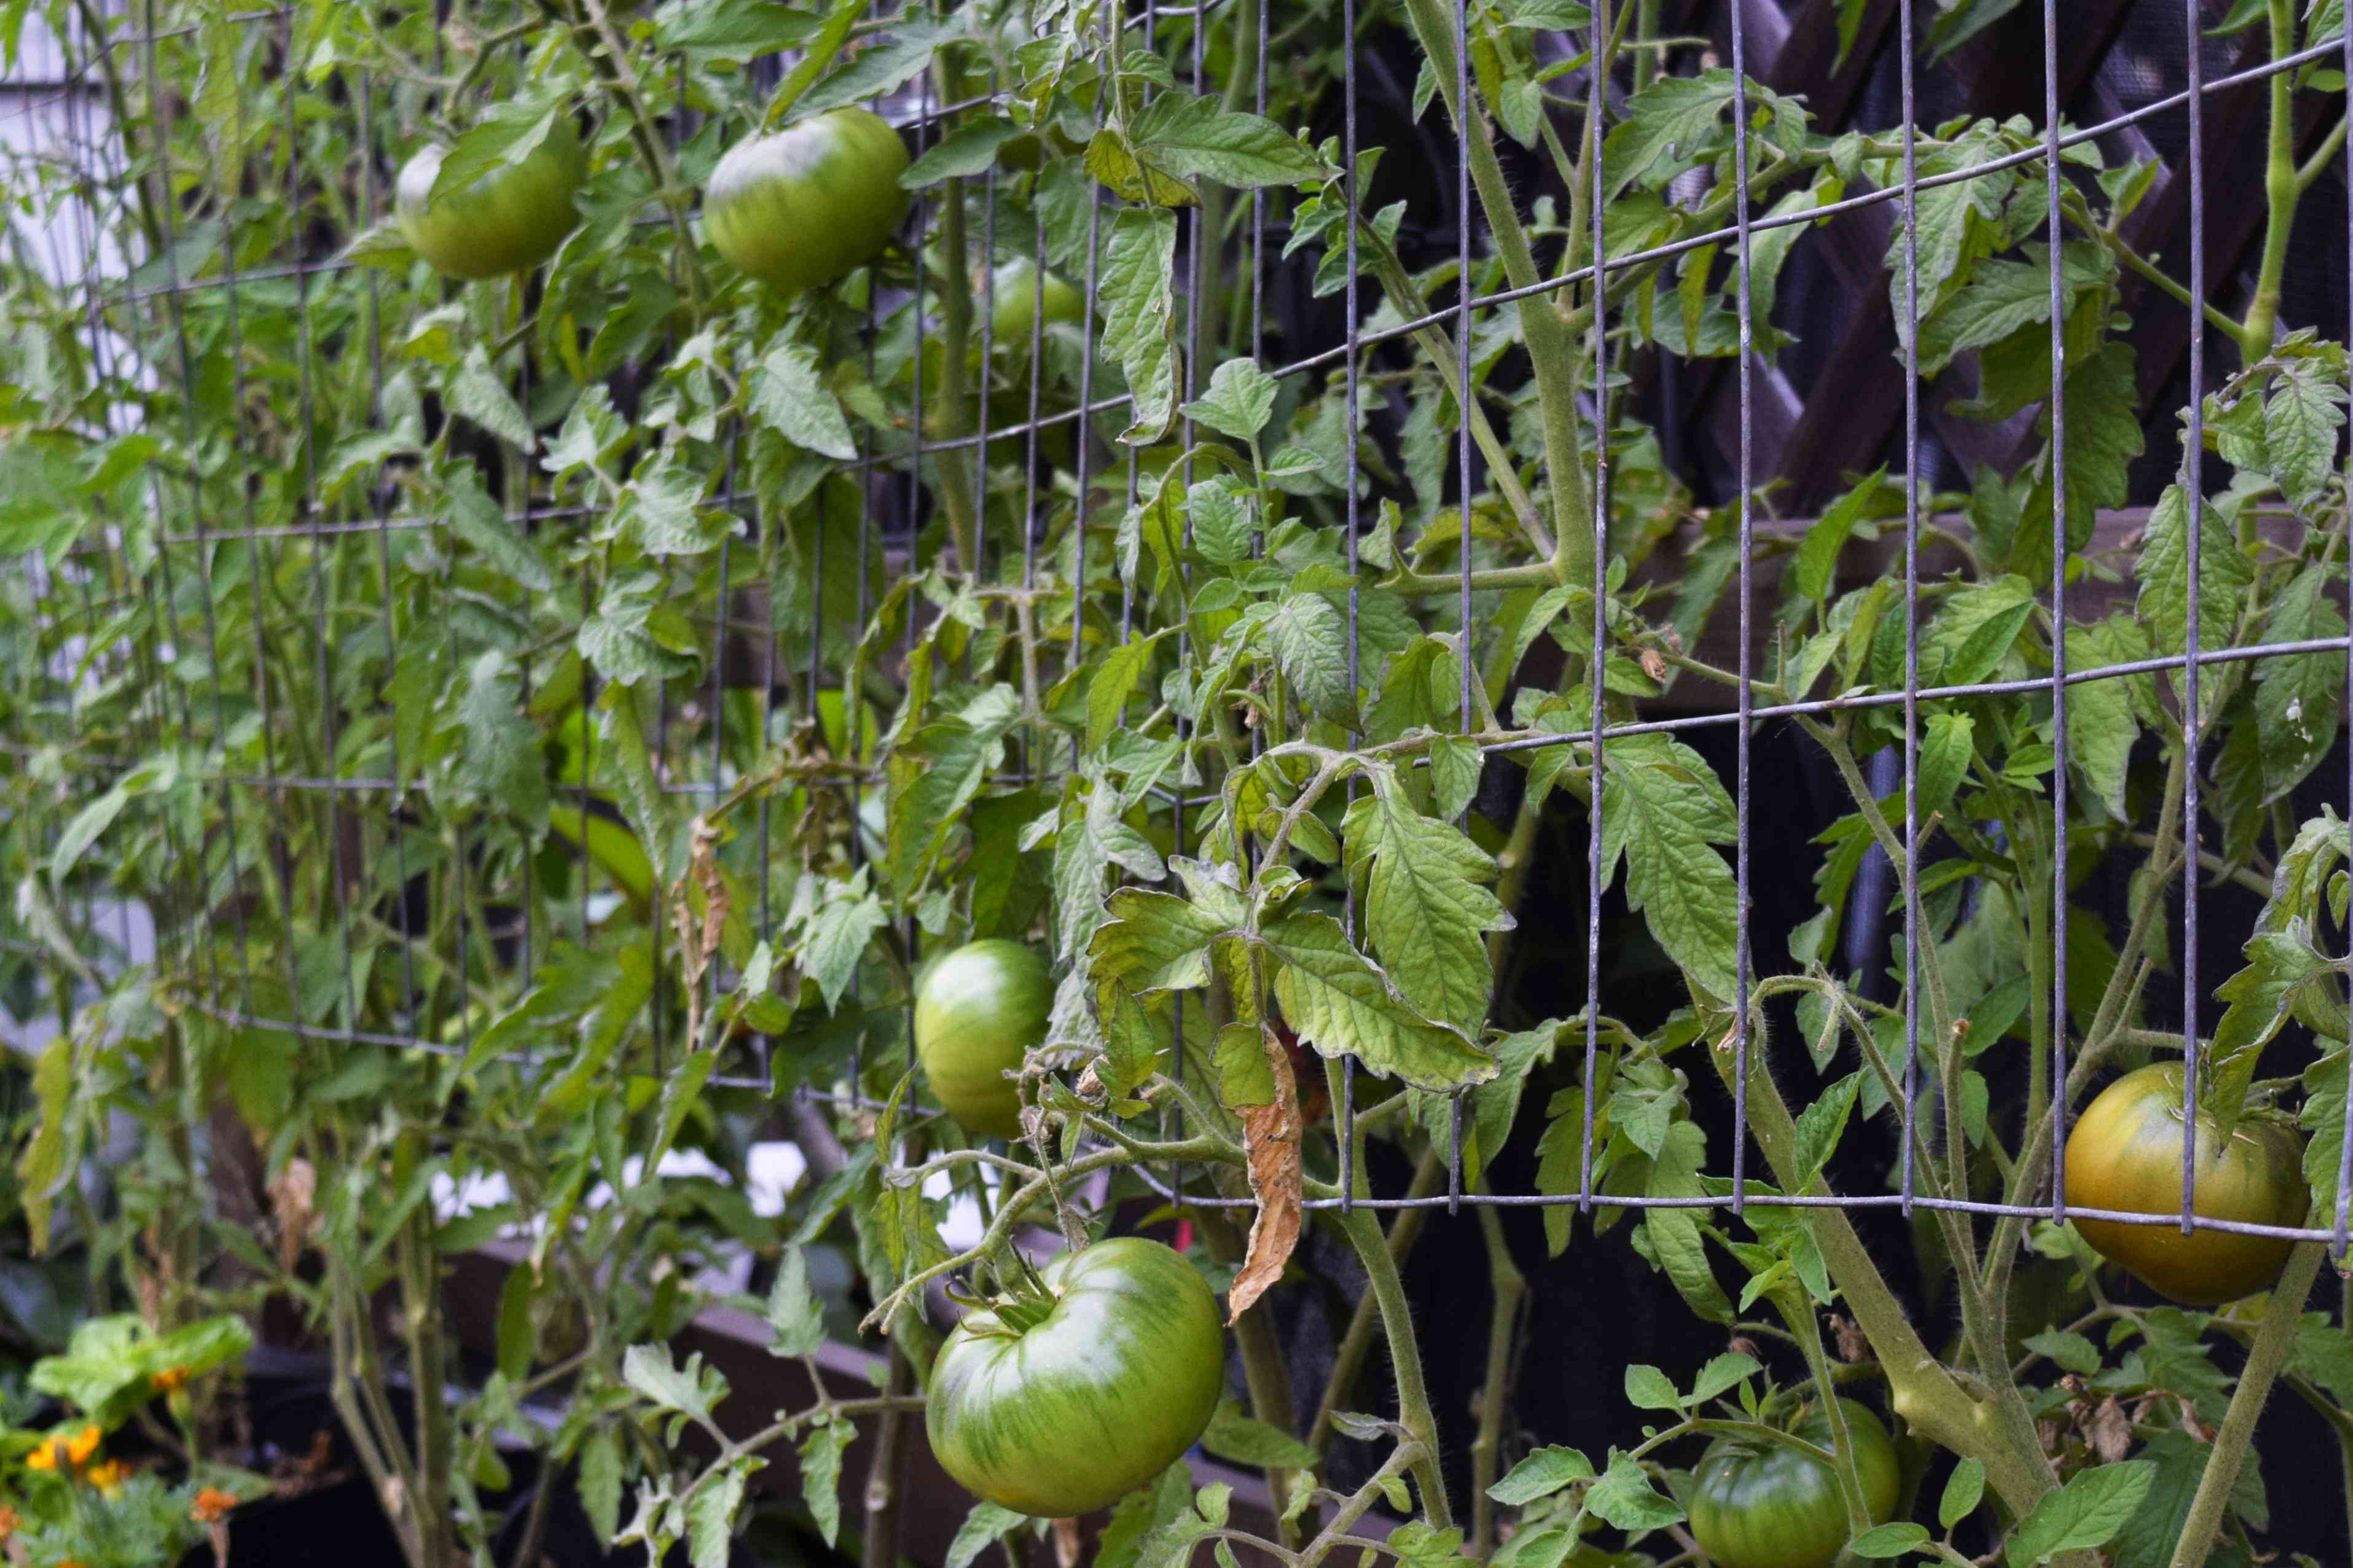 Tomato plant vines hanging from metal cage with green tomatoes hanging